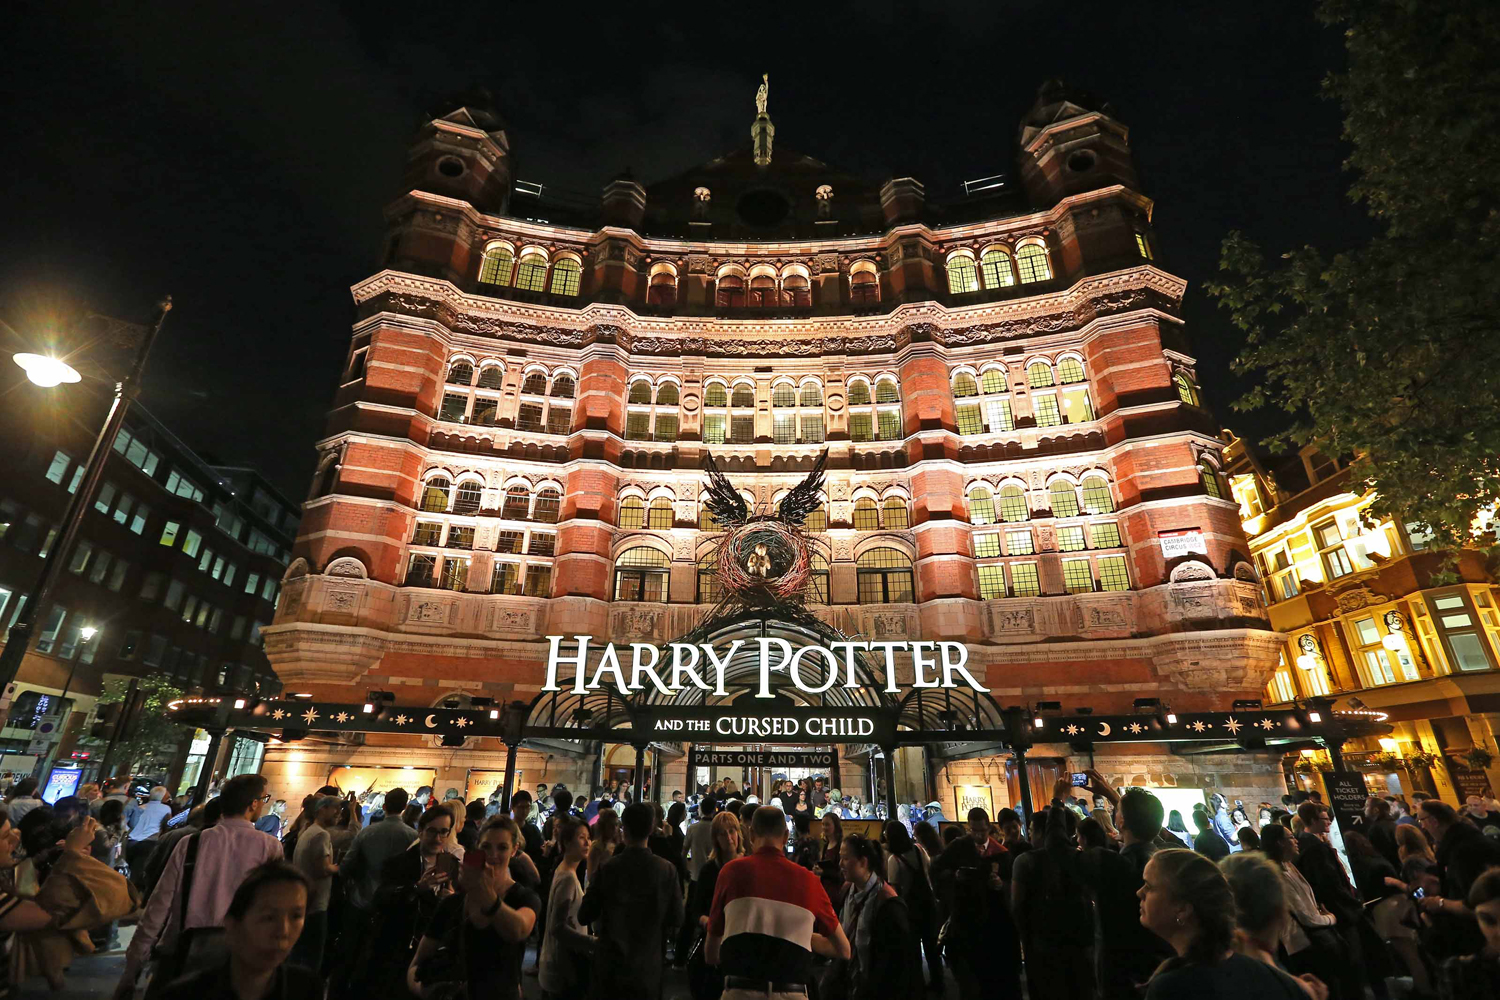 Harry Potter & the Cursed Child augmente ses prix grâce aux tickets Premium